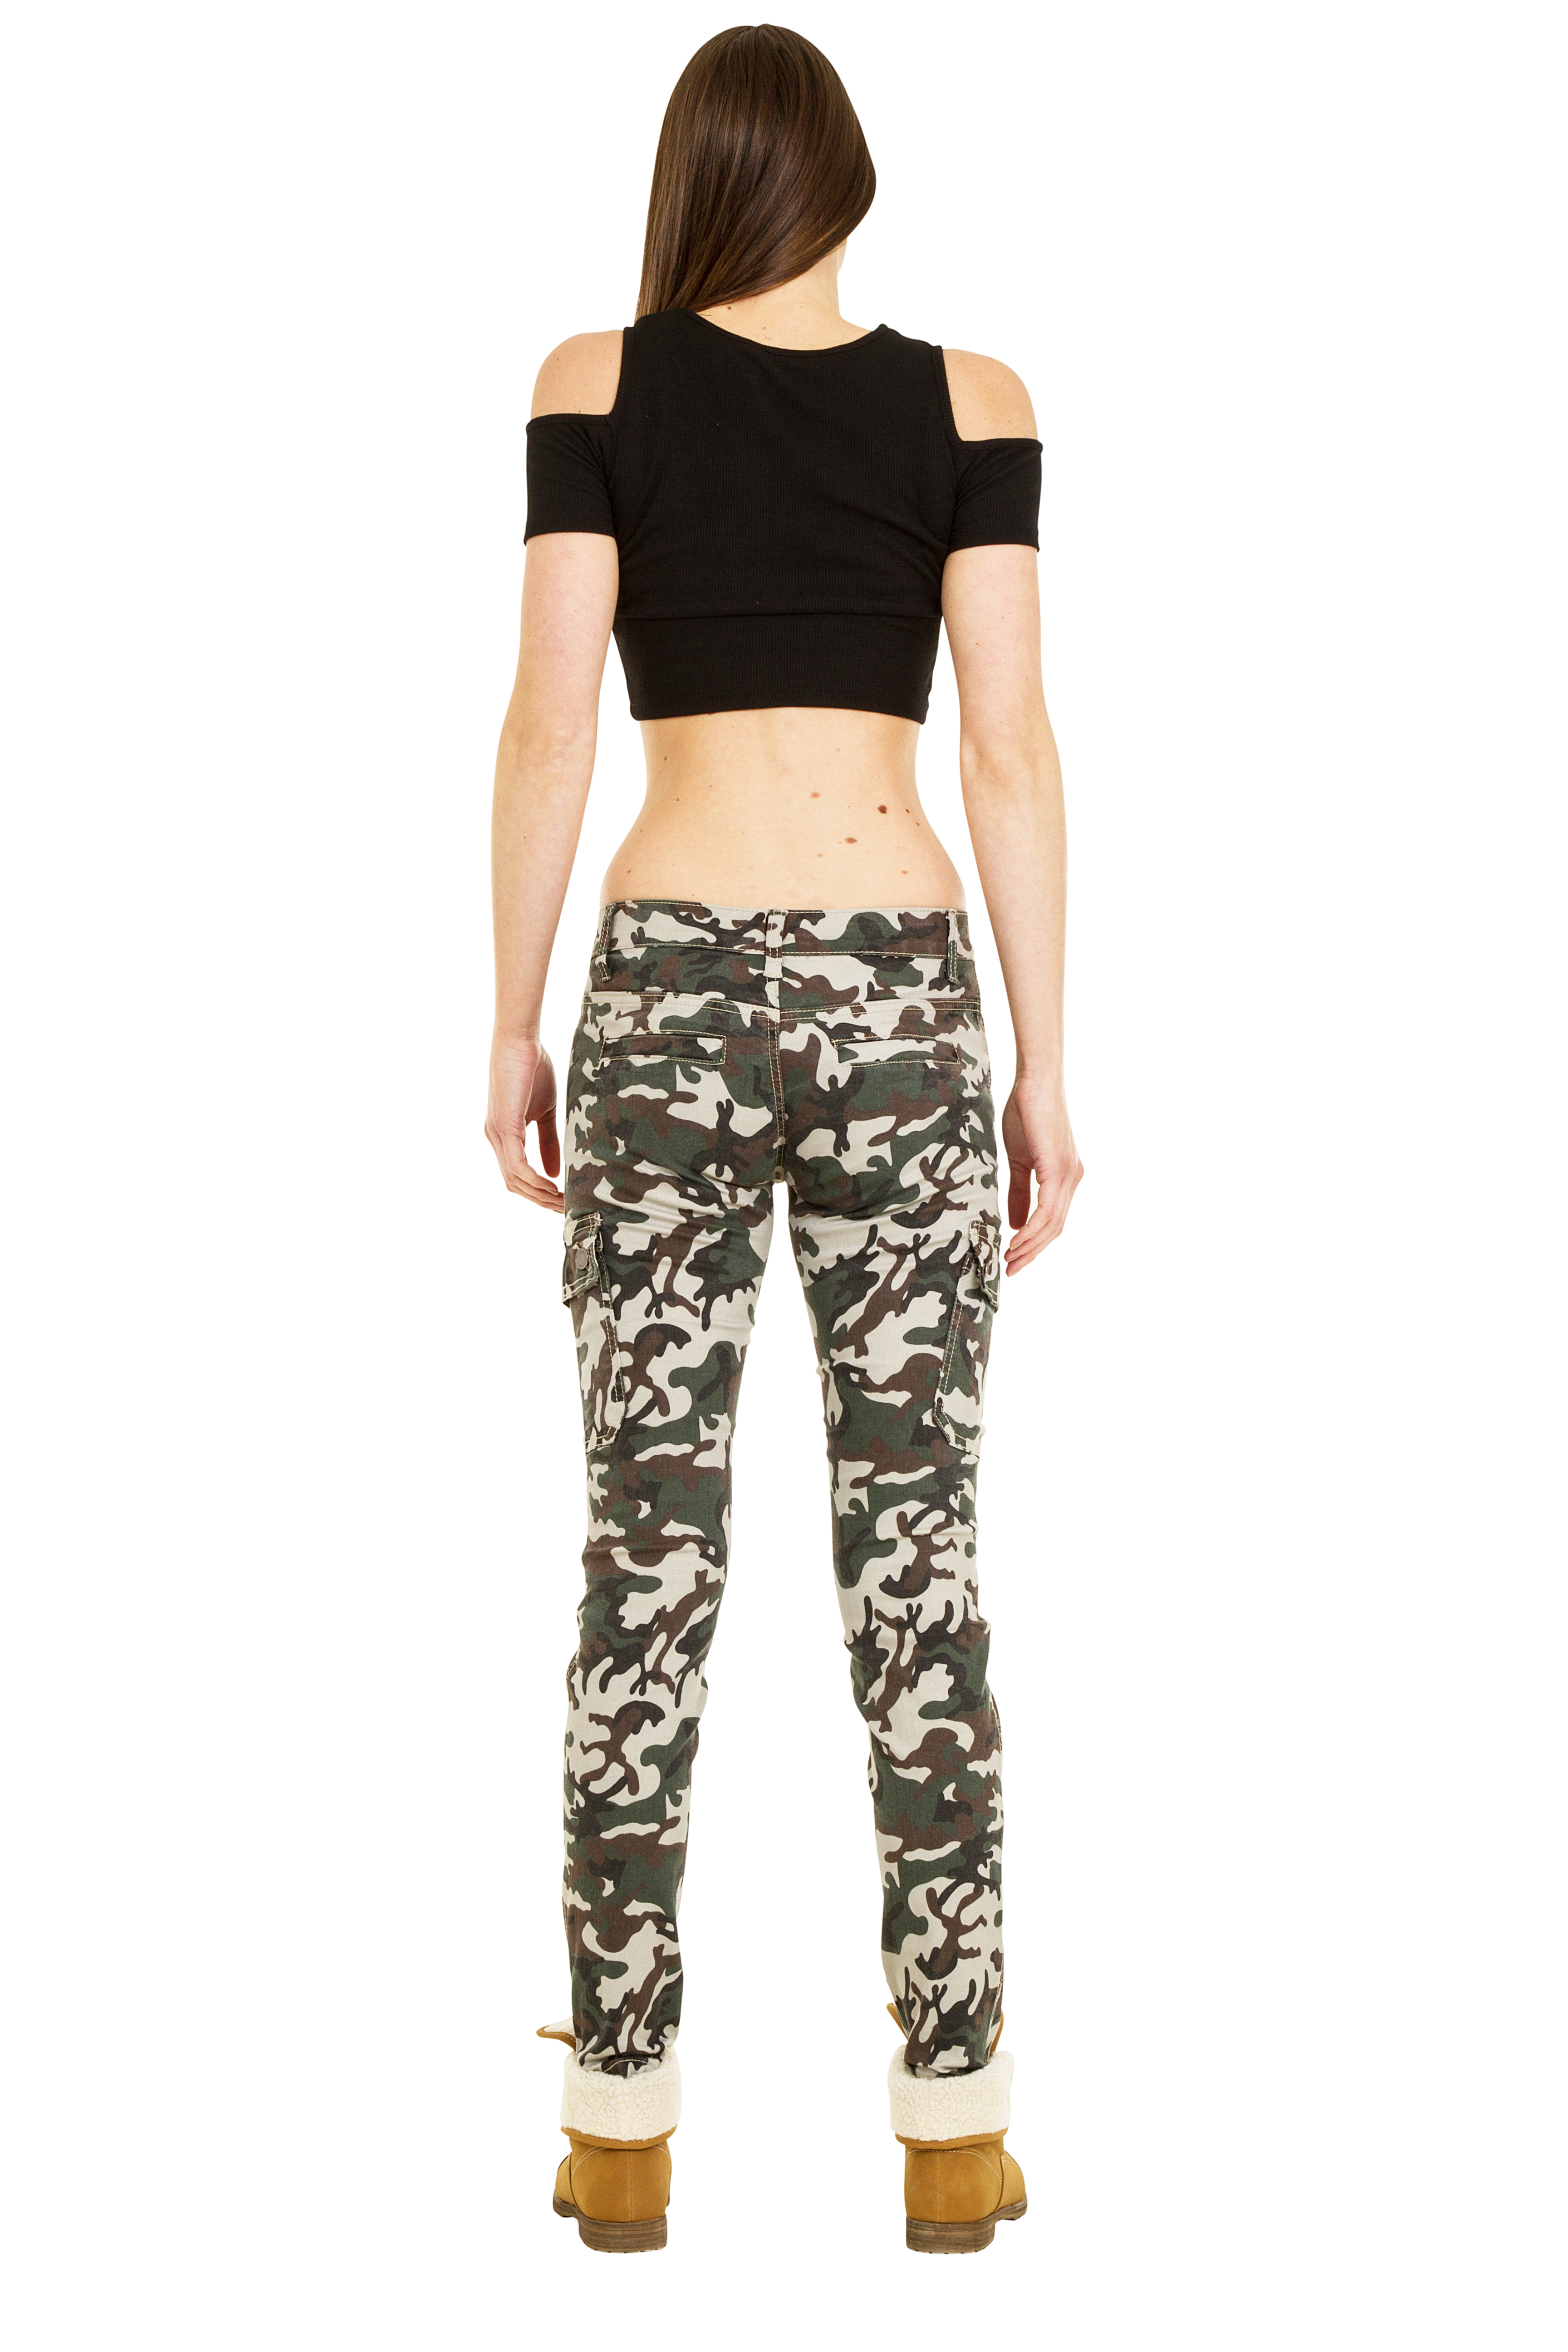 Womens Low Rise Cargo Pants With Amazing Inspiration